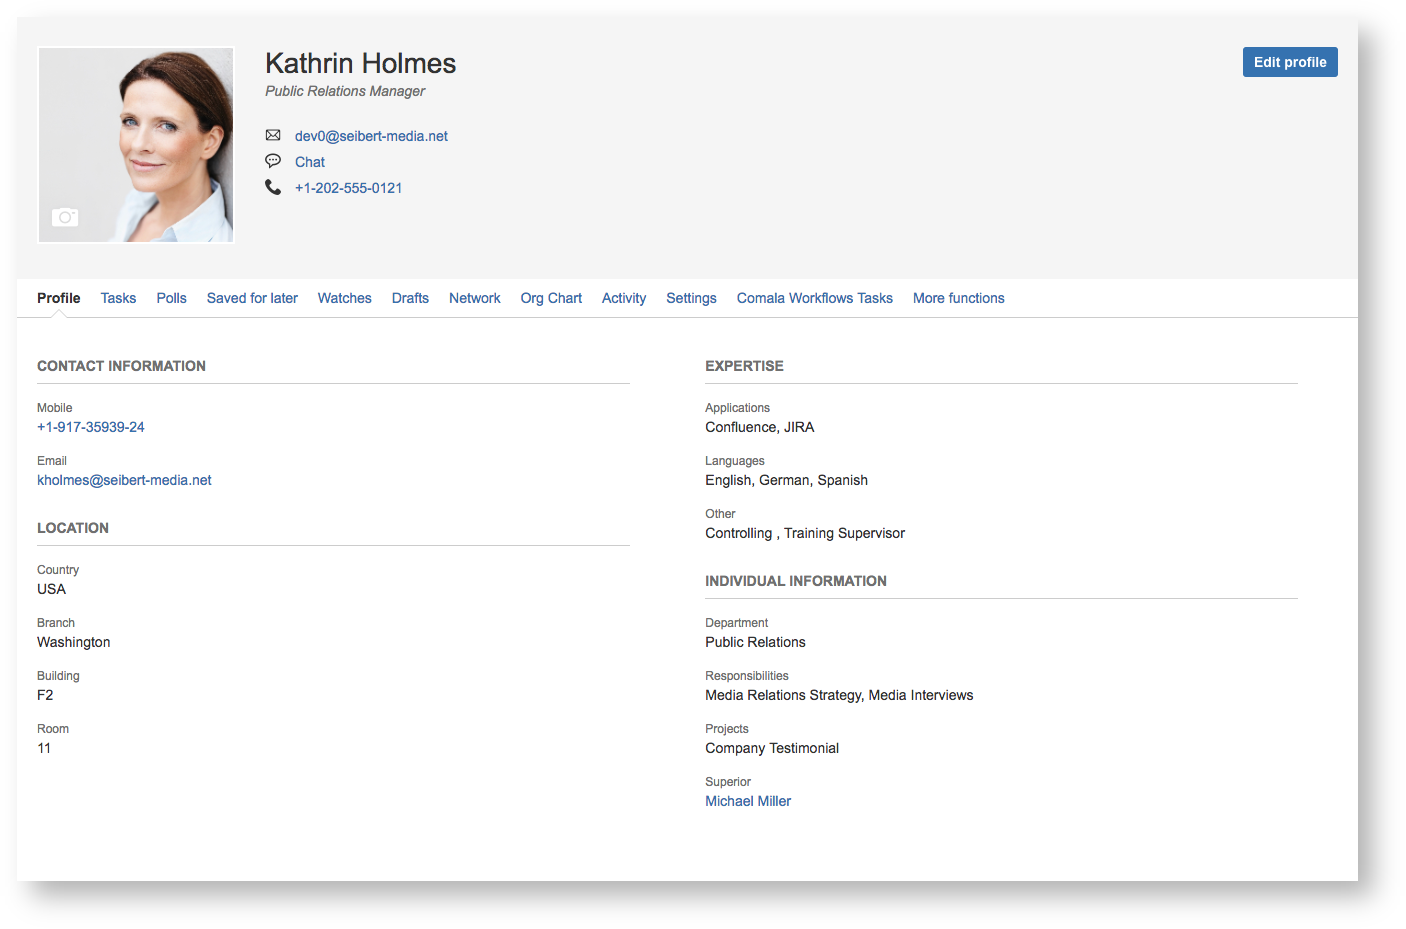 View of the Custom User Profile